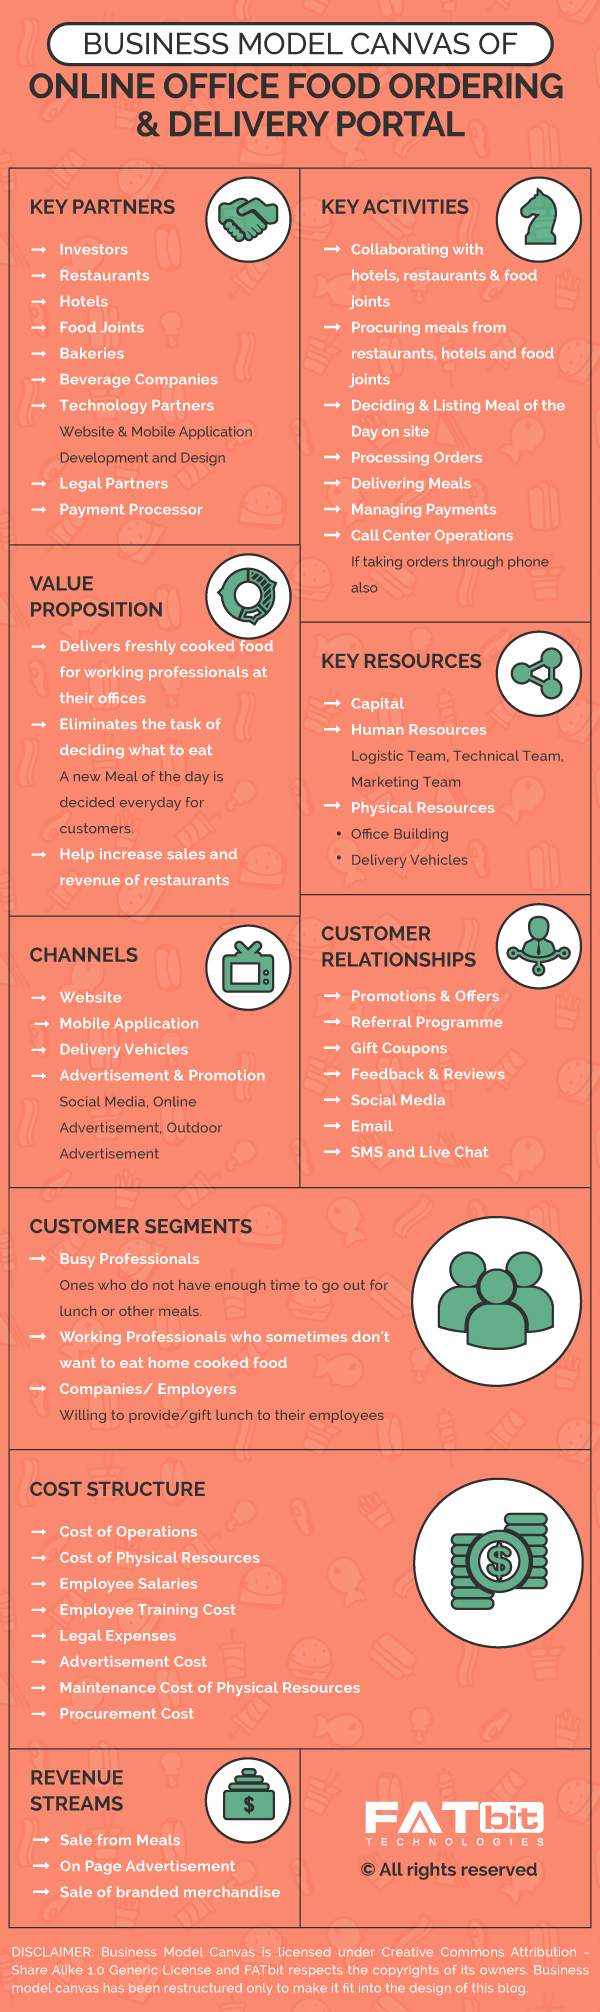 online office ordering business model canvas